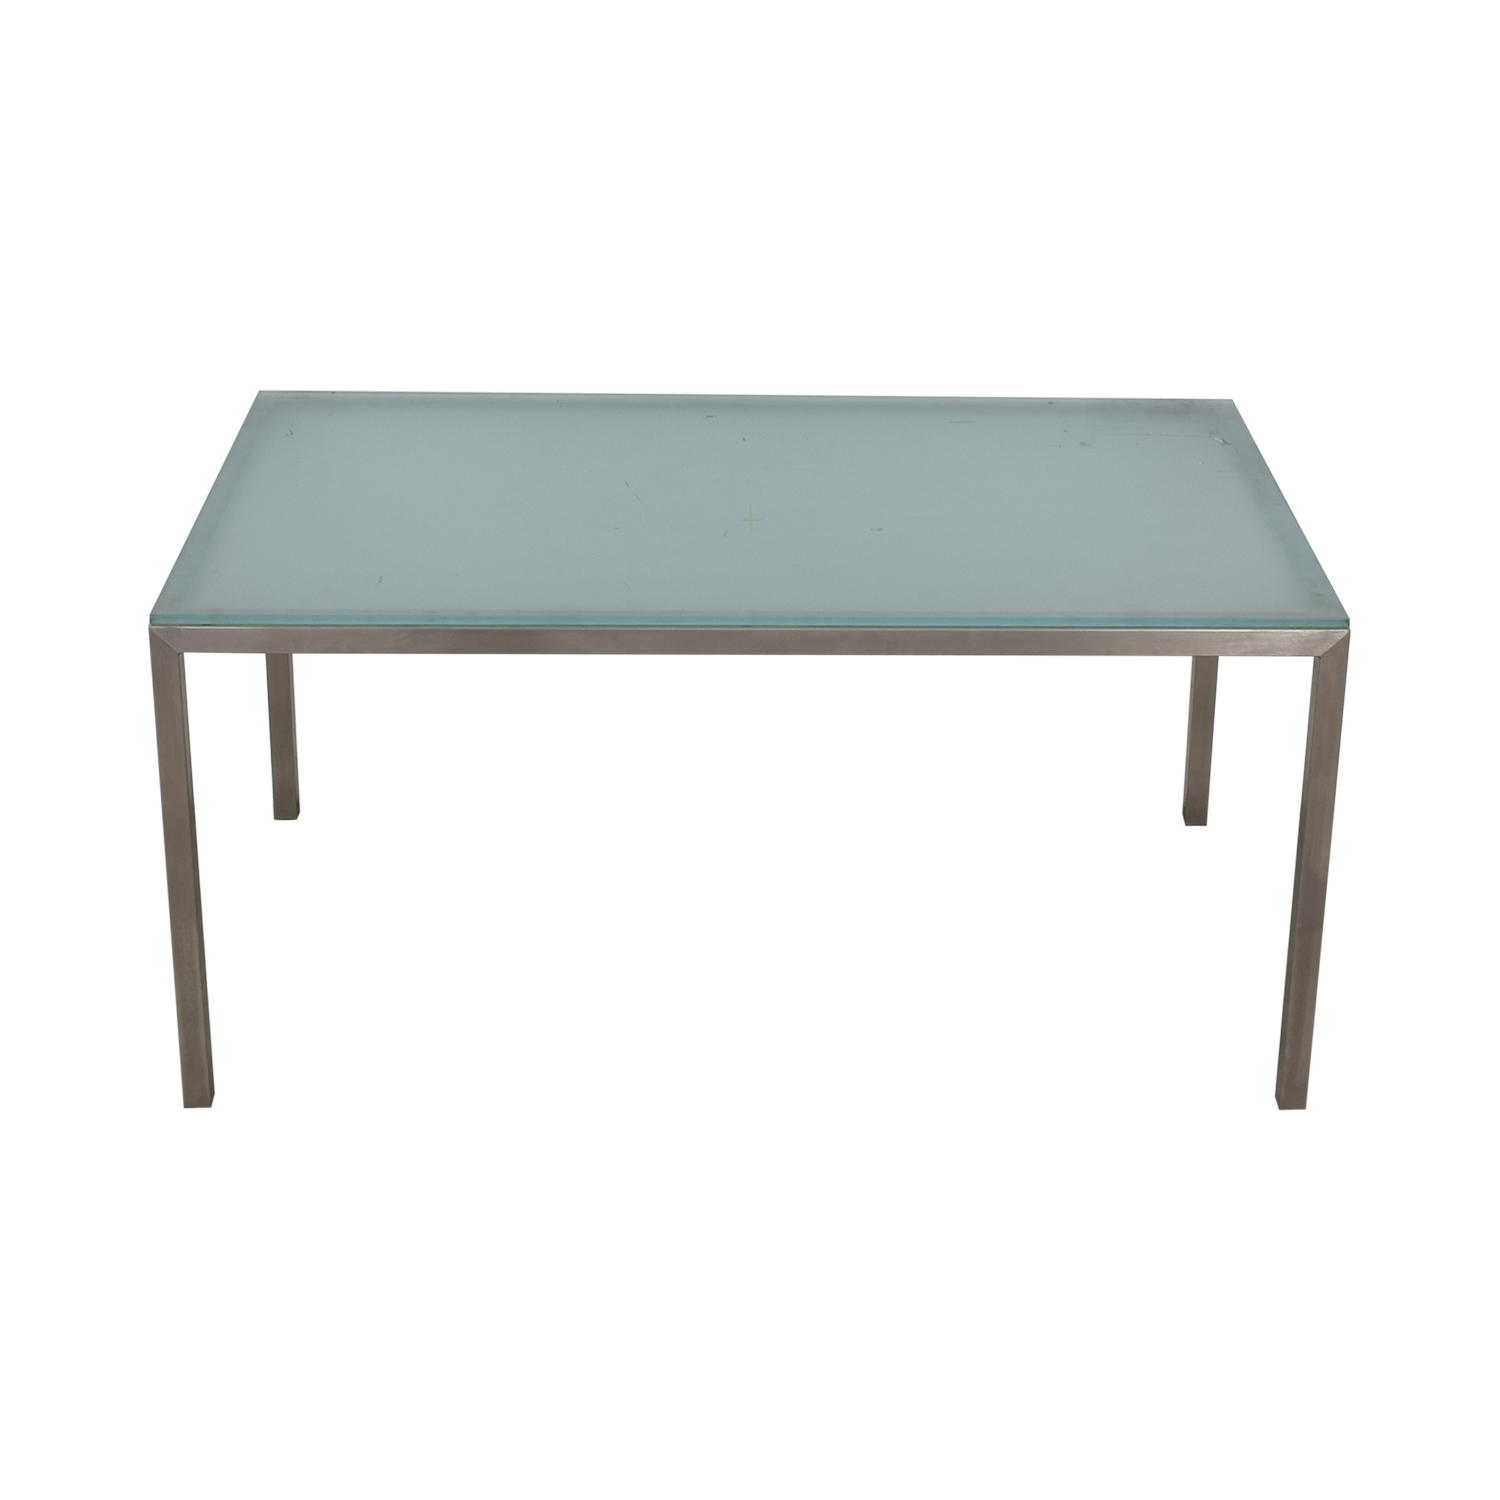 Room & Board Room & Board Portica Glass and Chrome Dining Table for sale